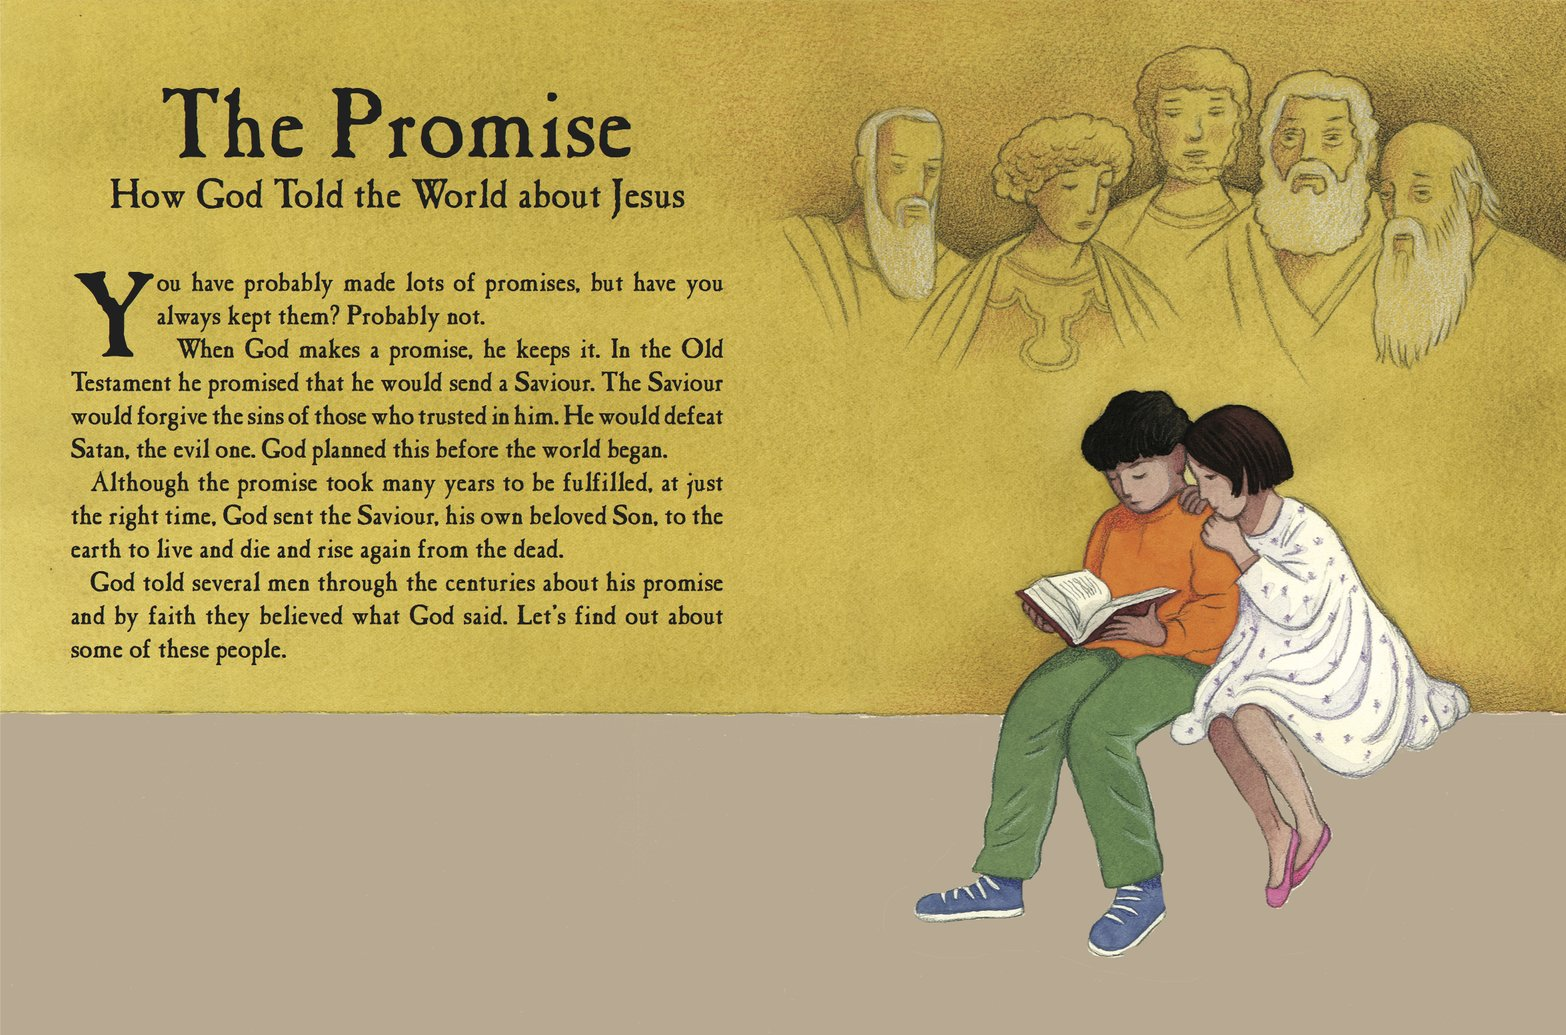 New From Carine MacKenzie: The Promise: How God Told the World about Jesus